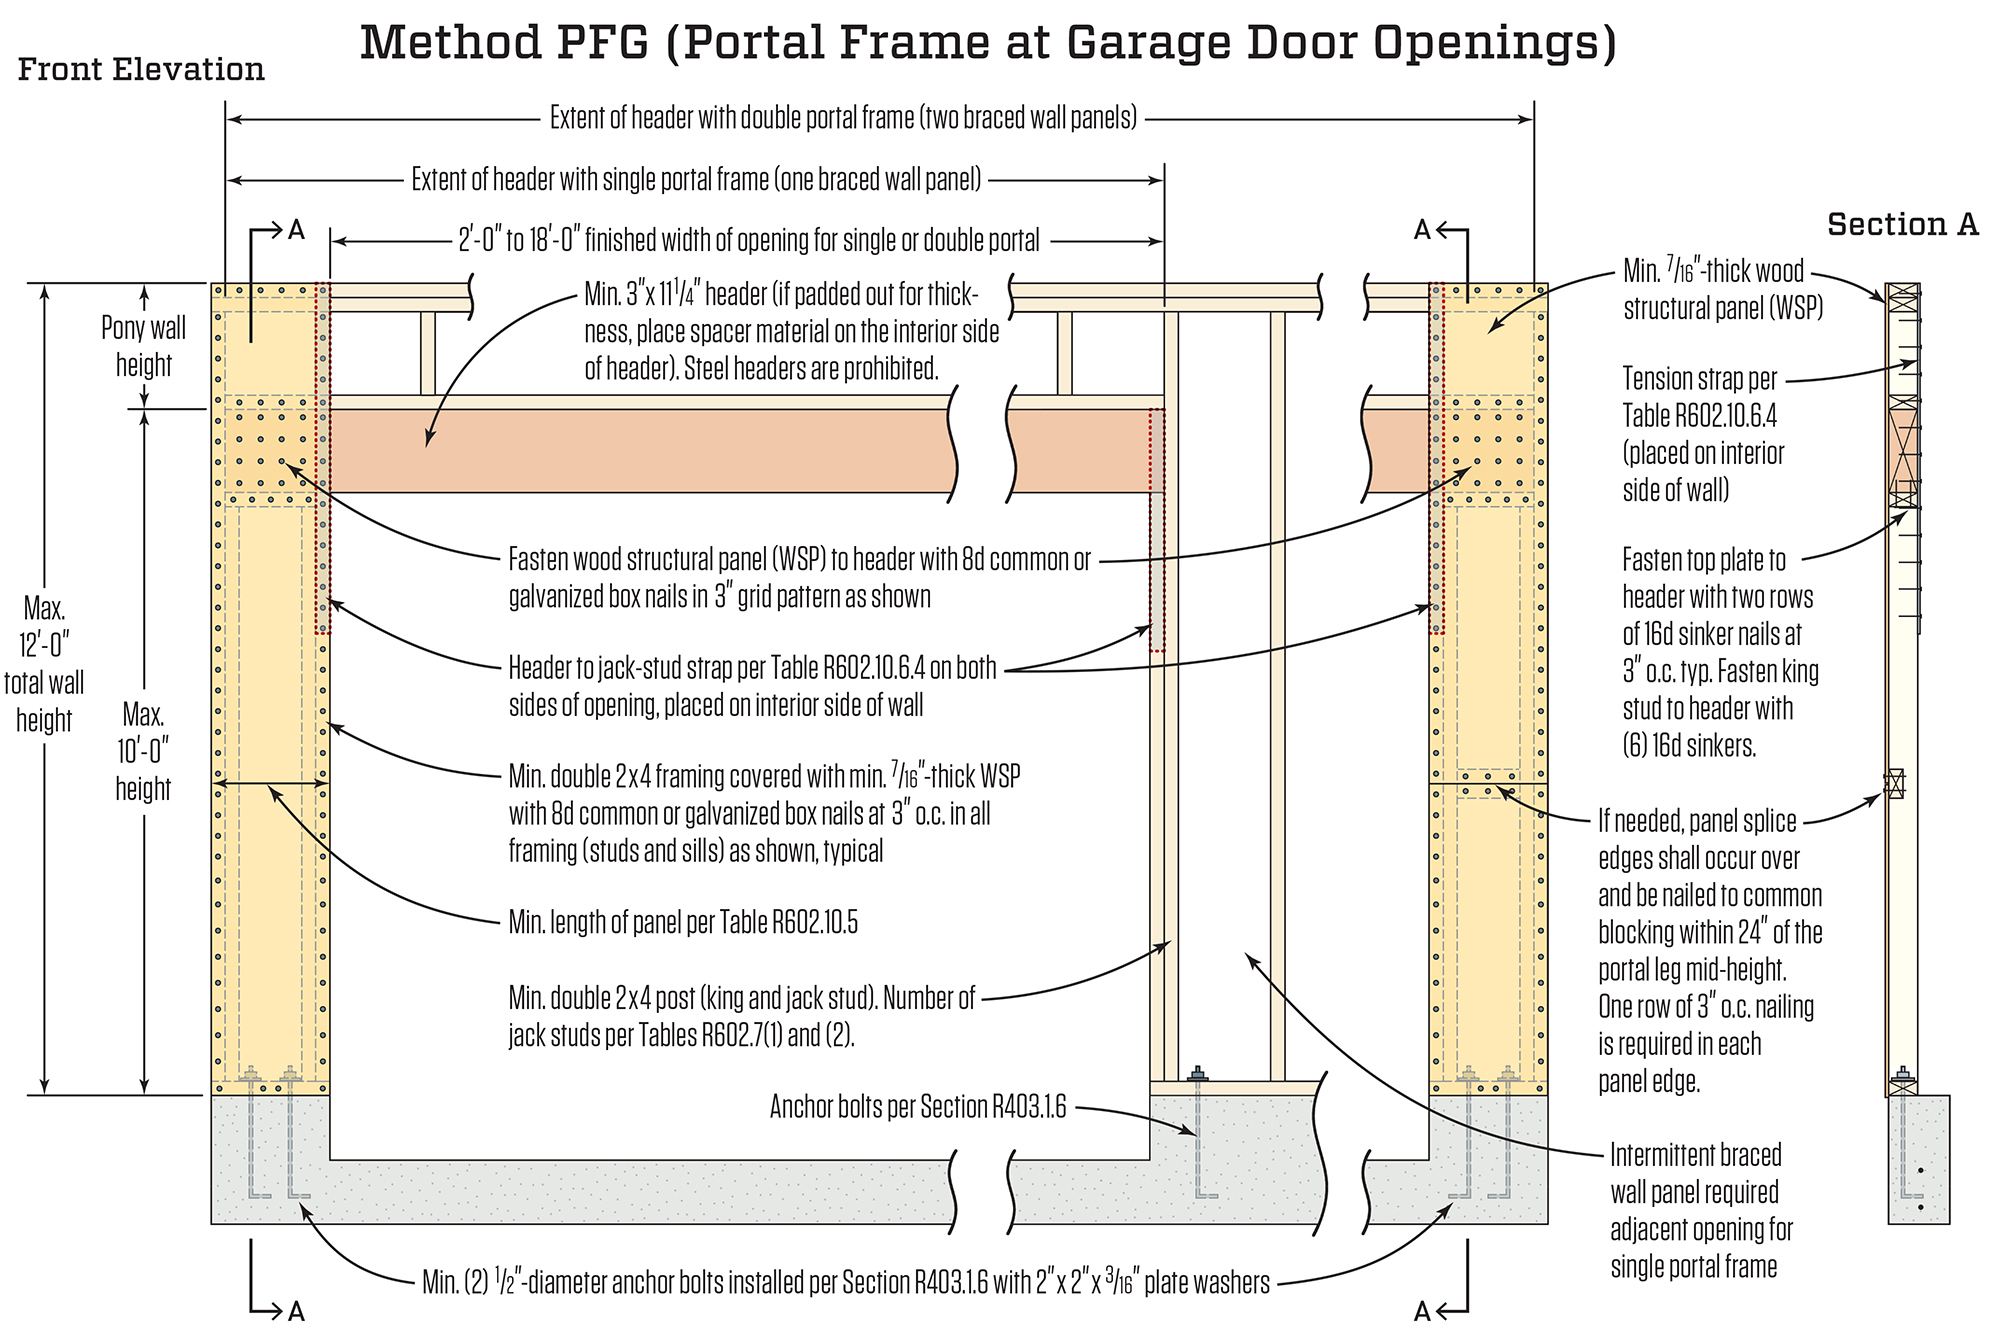 The portal frame option jlc online storm and wind for Garage door wind code ratings